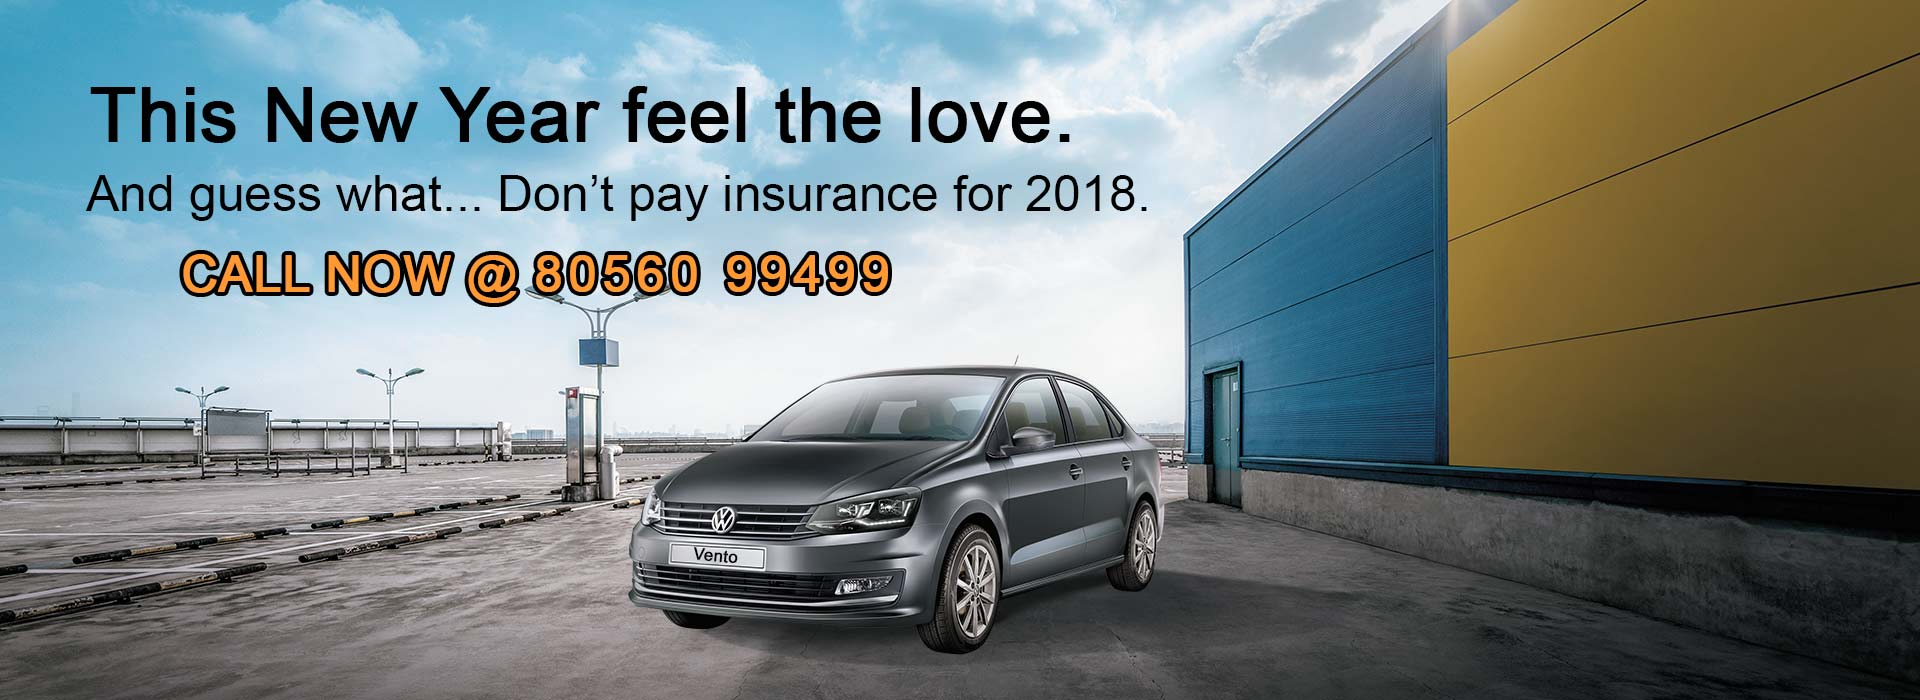 Kun Volkswagen Volkswagen Authorized Car Dealers